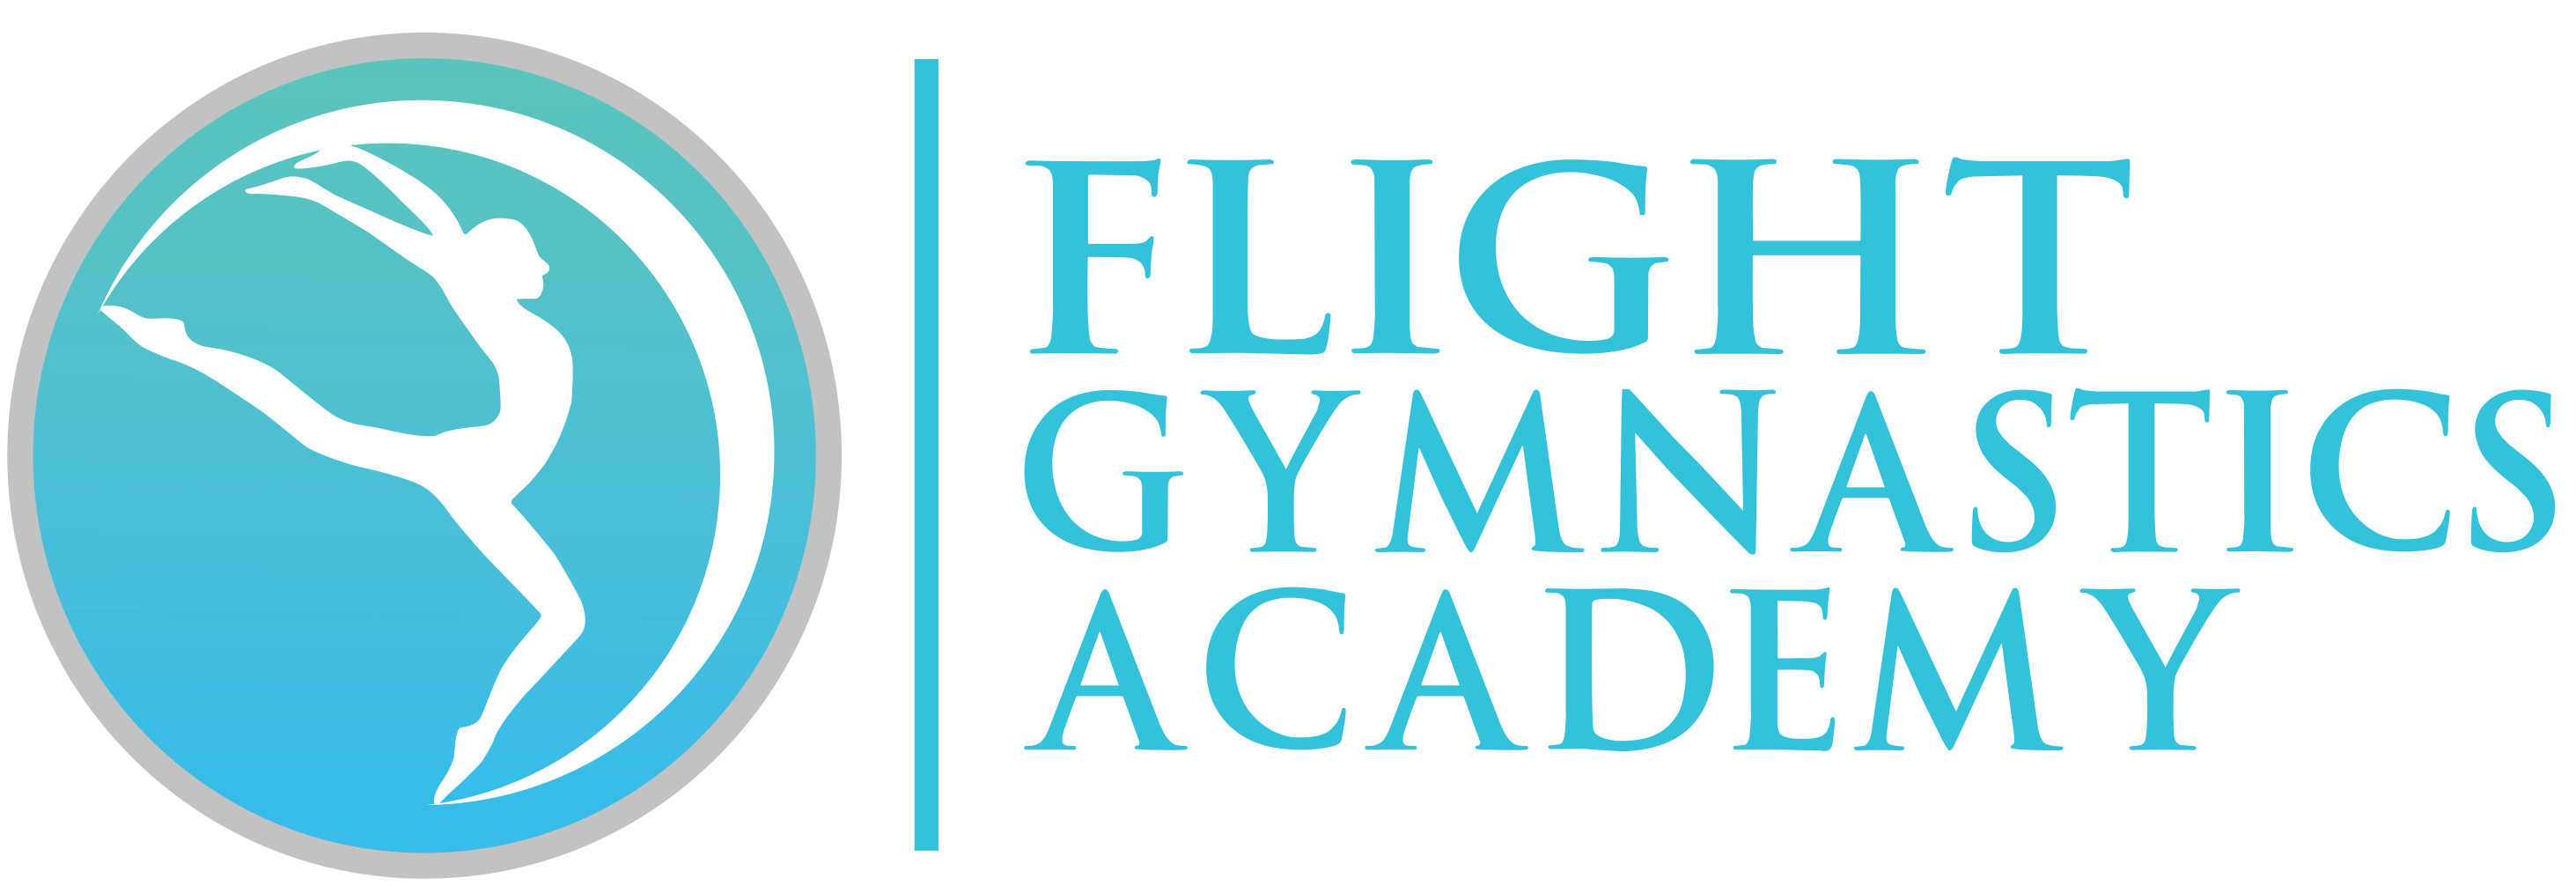 Flight Gymnastics Logo Solid[10429]